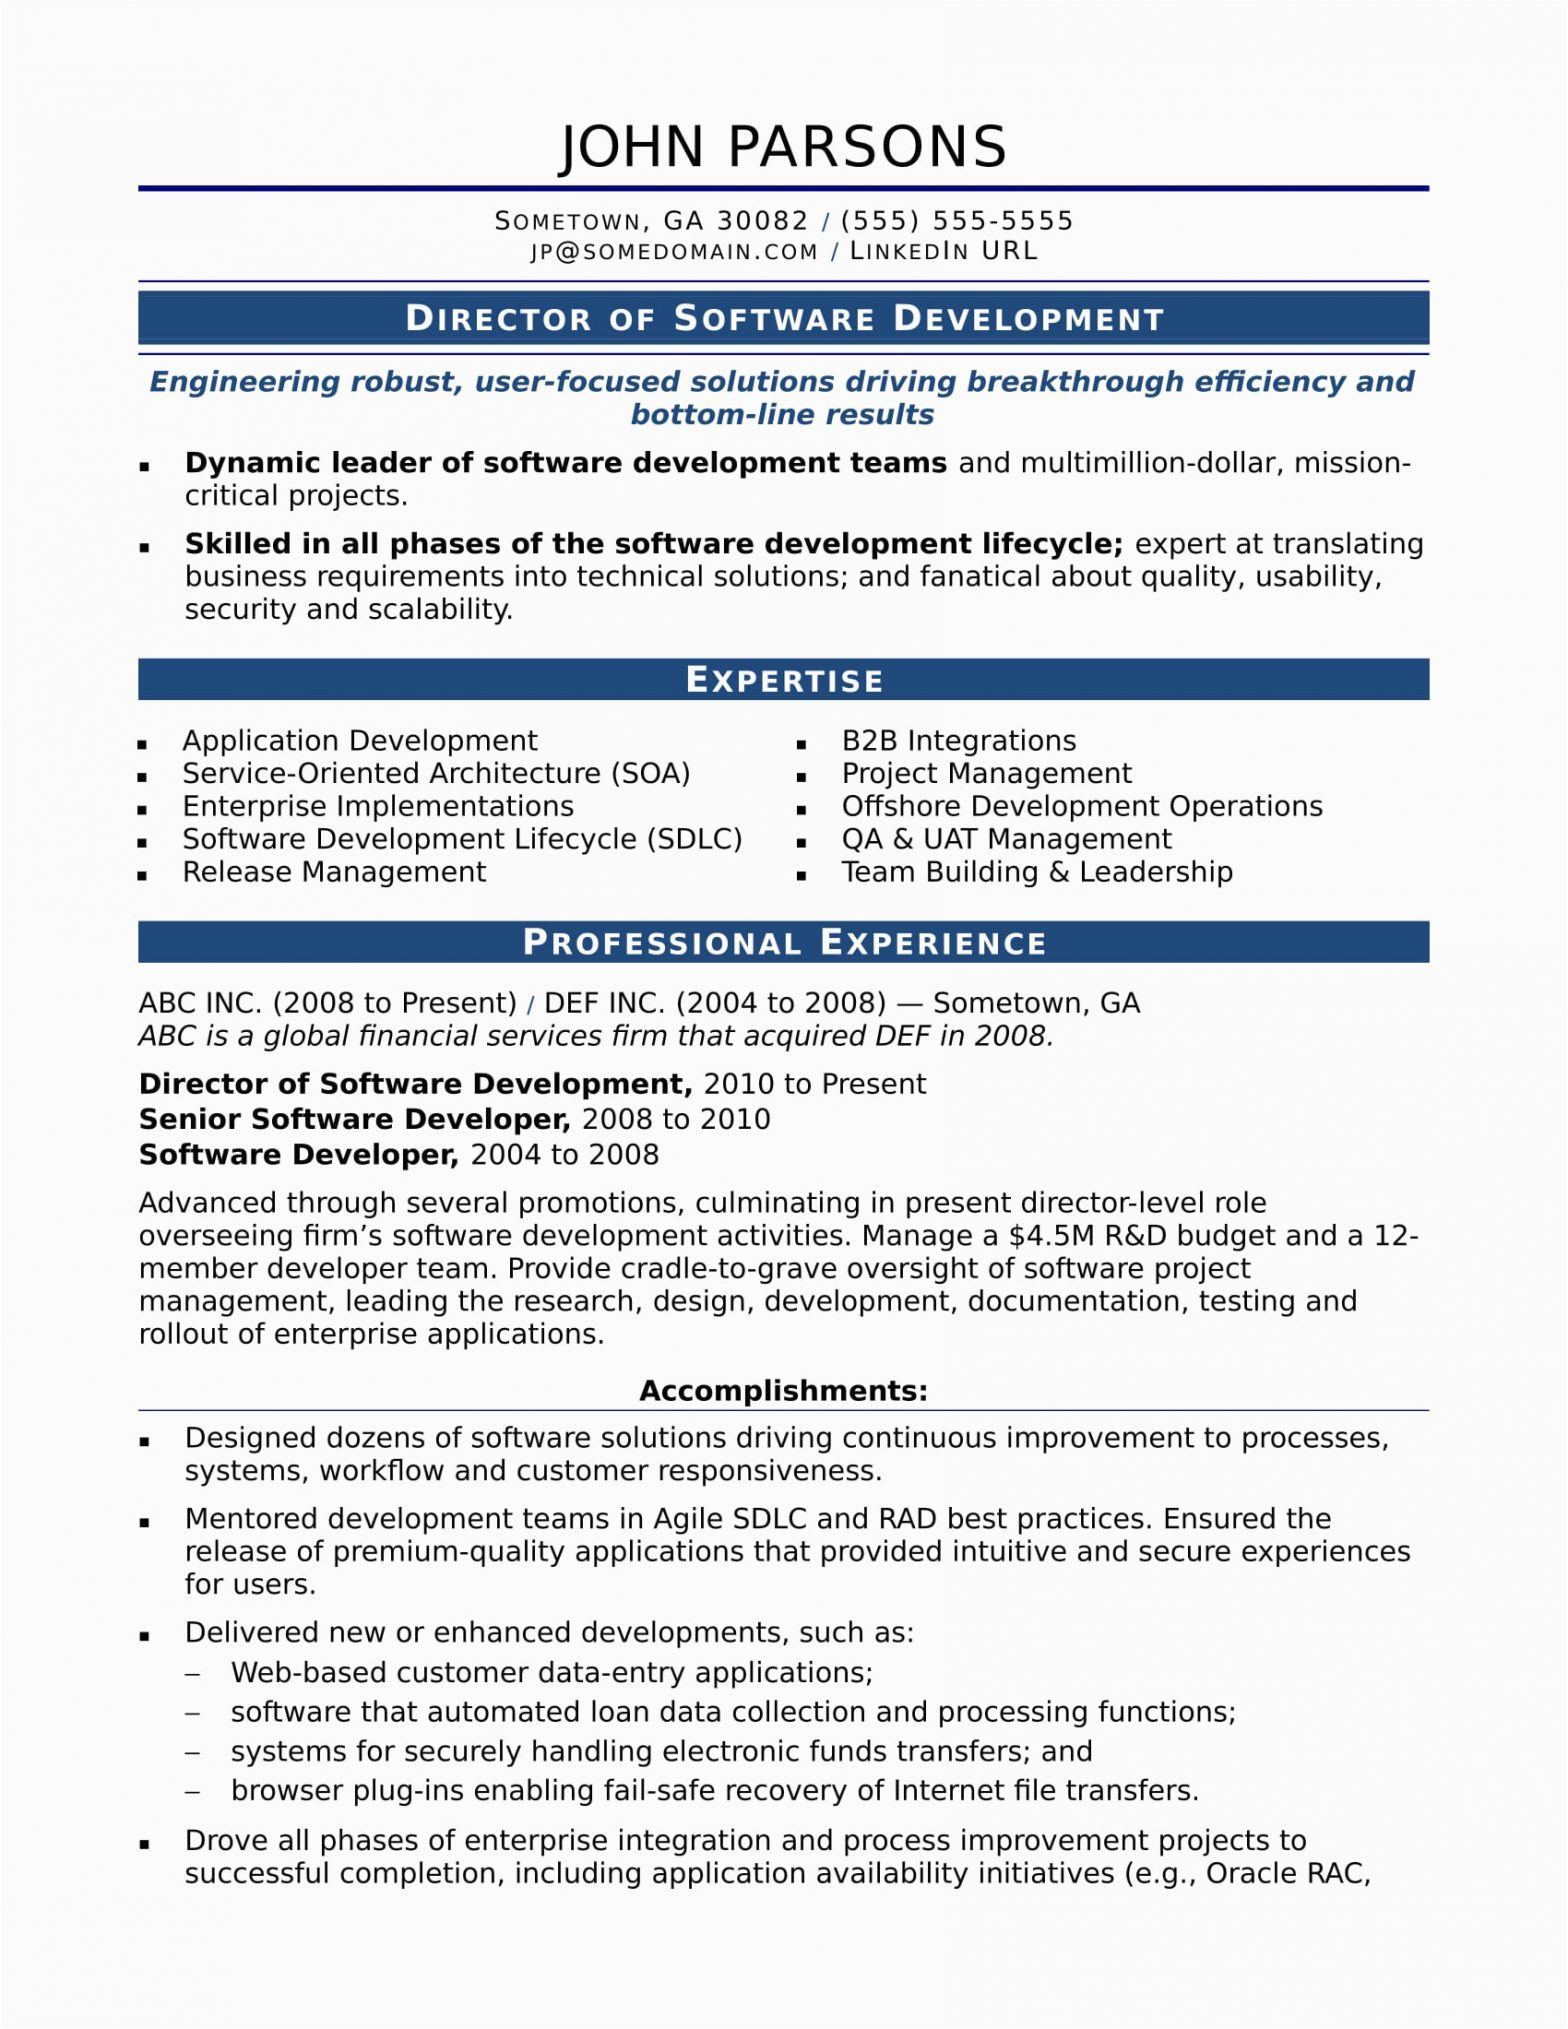 Resume Samples for Experienced software Developer Sample Resume for An Experienced It Developer